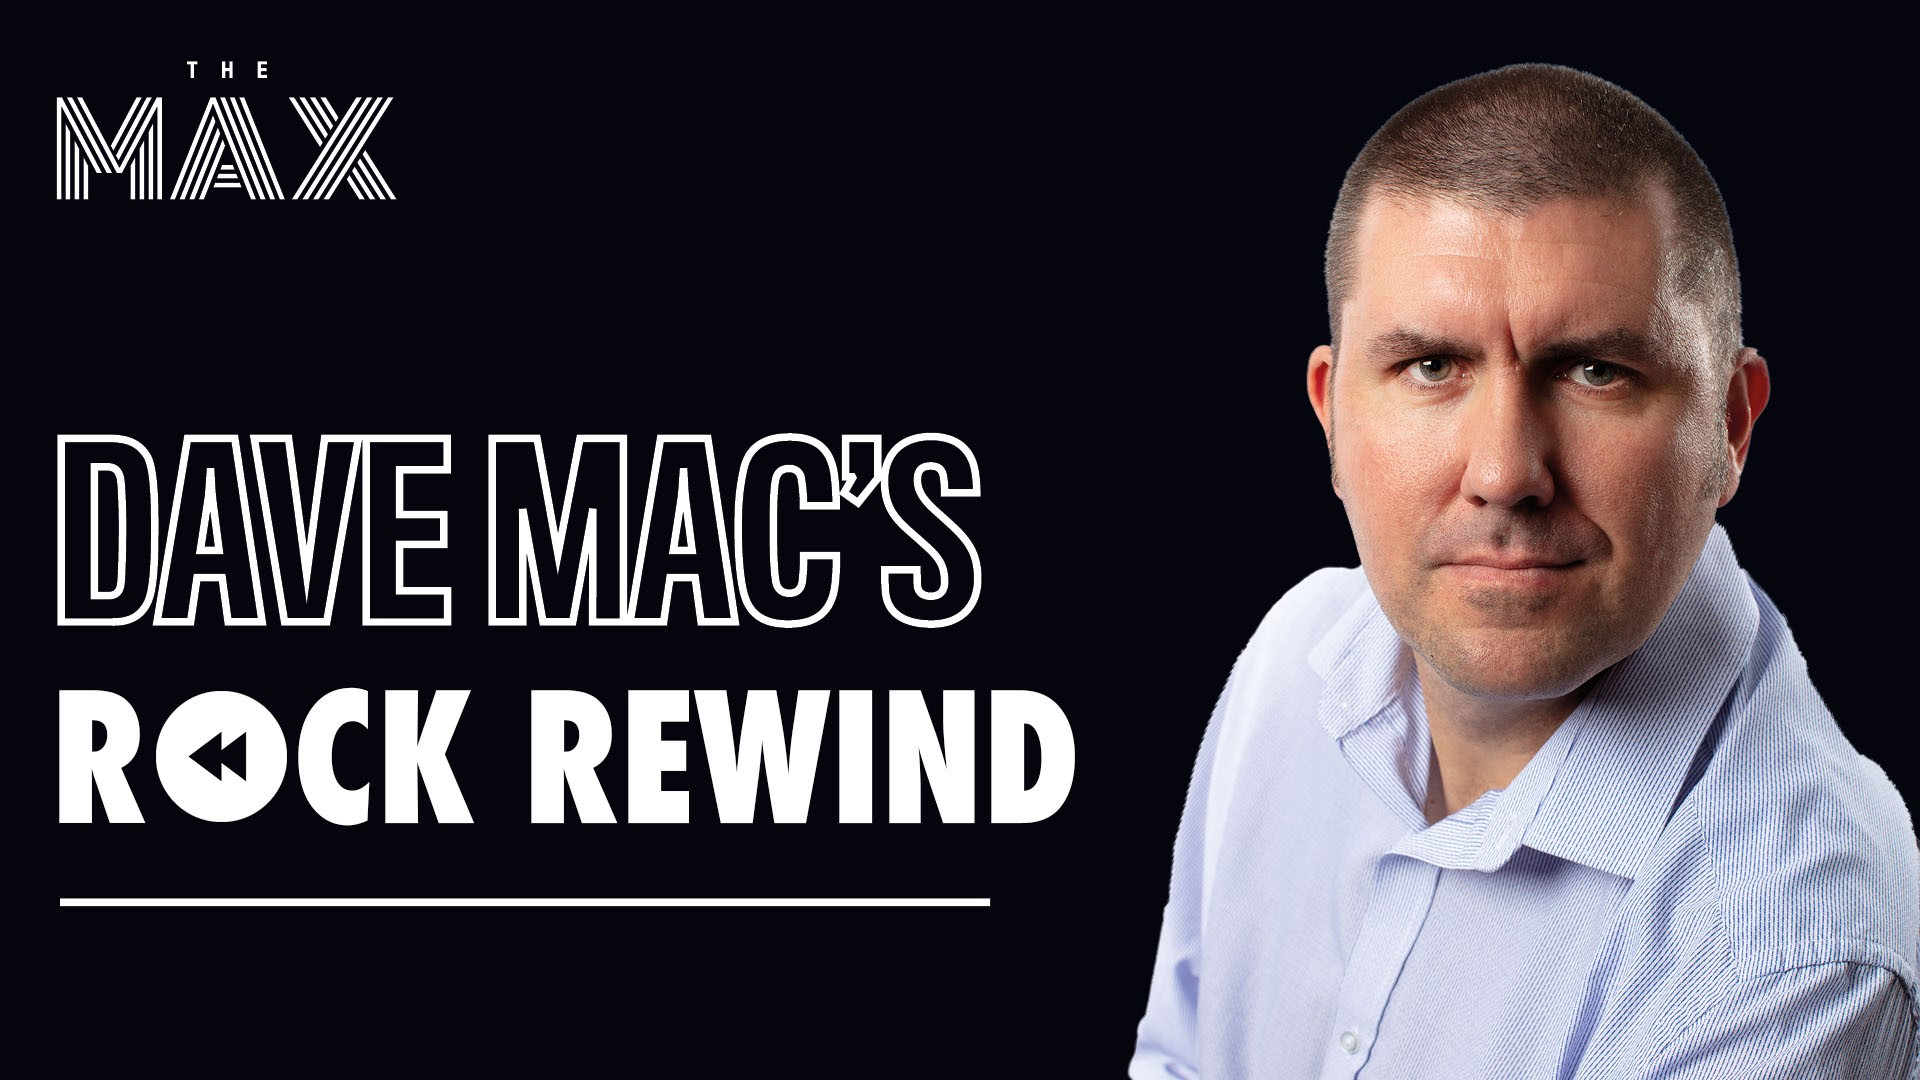 Dave Mac's Rock Rewind